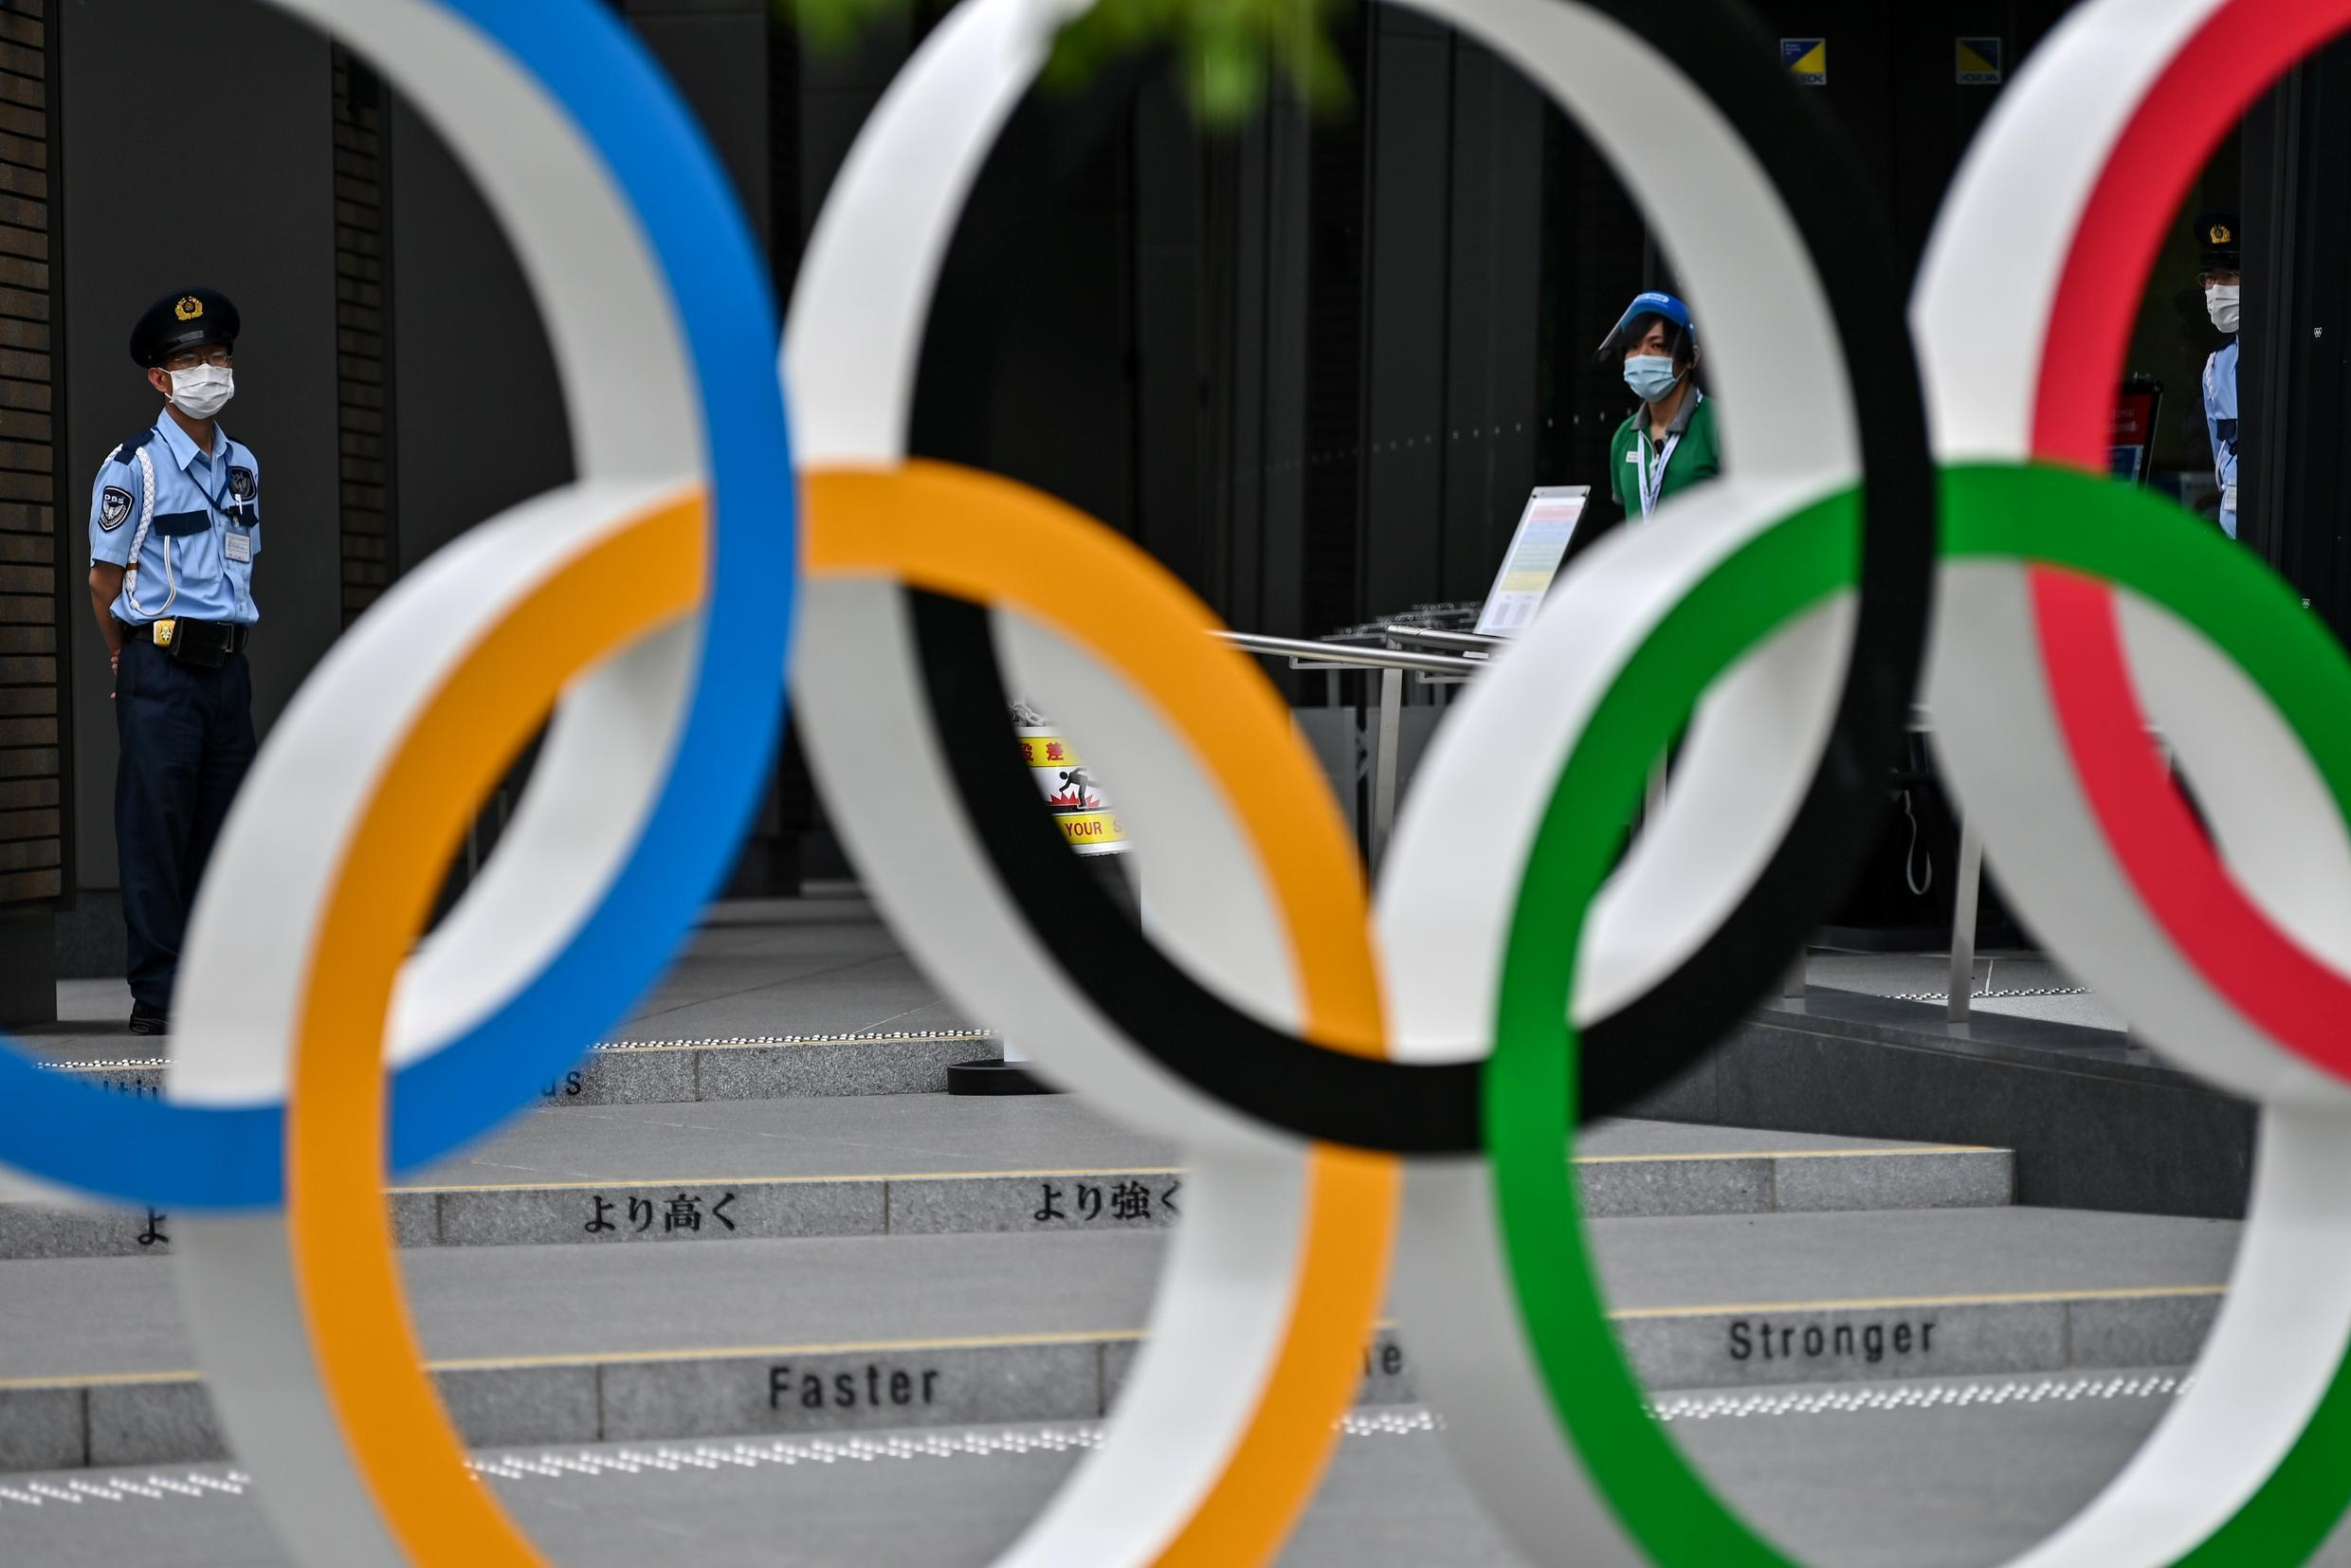 The Tokyo 2020 Games were postponed earlier this year as the scale of the coronavirus pandemic became clear